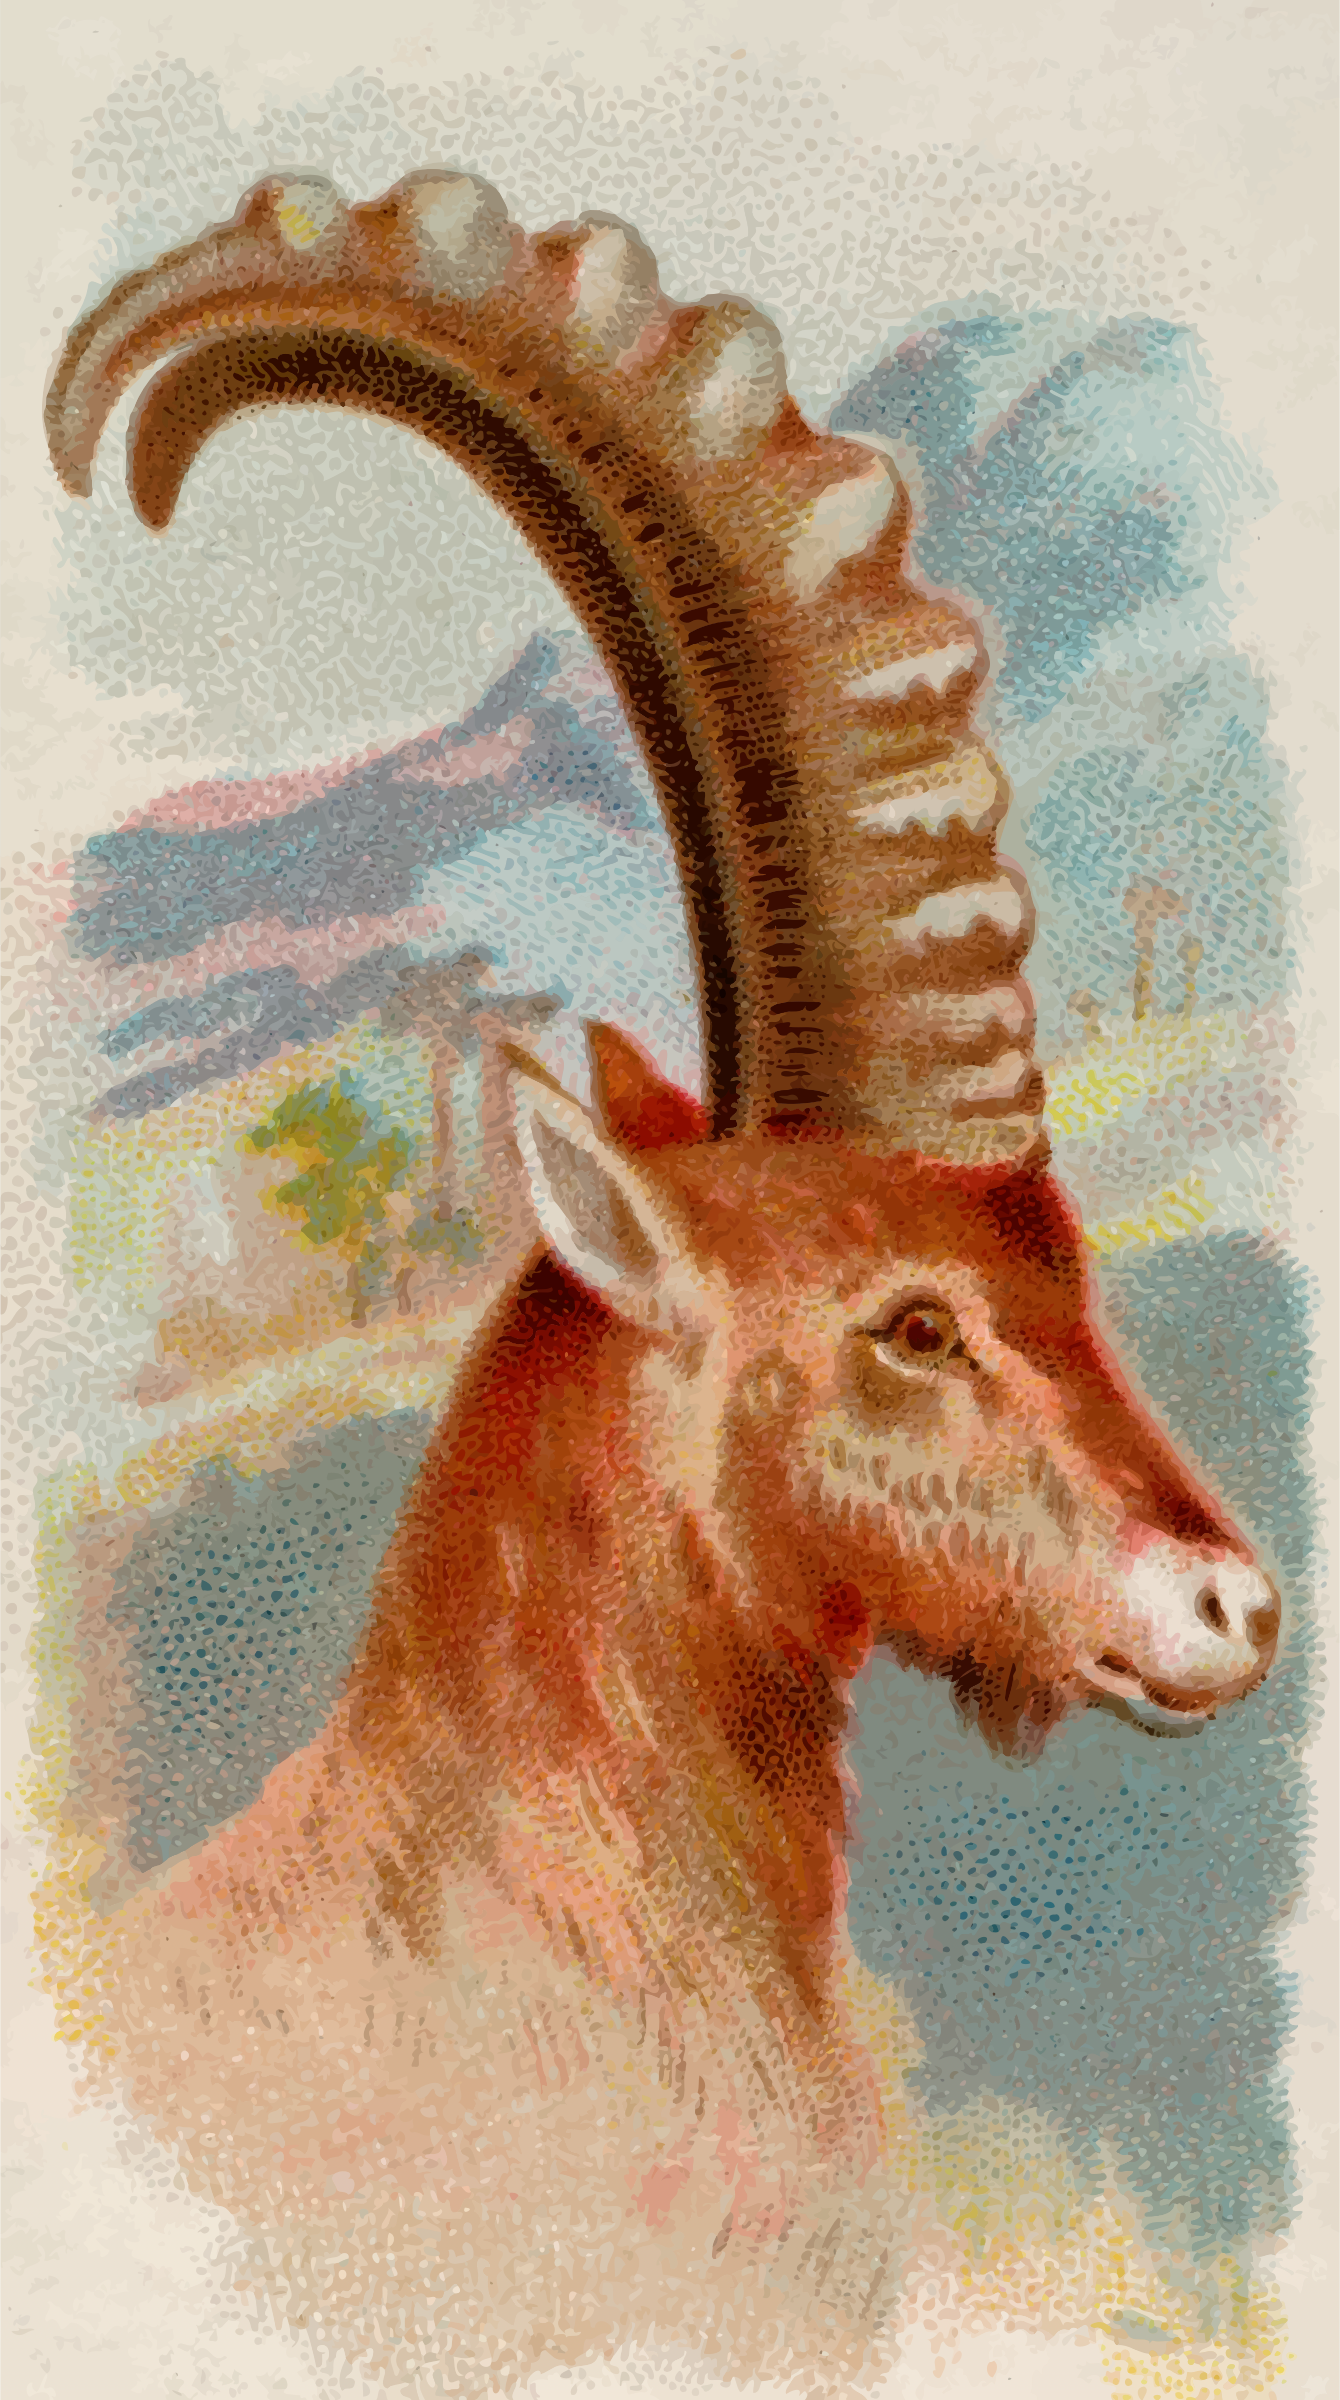 Cigarette card - Ibex by Firkin